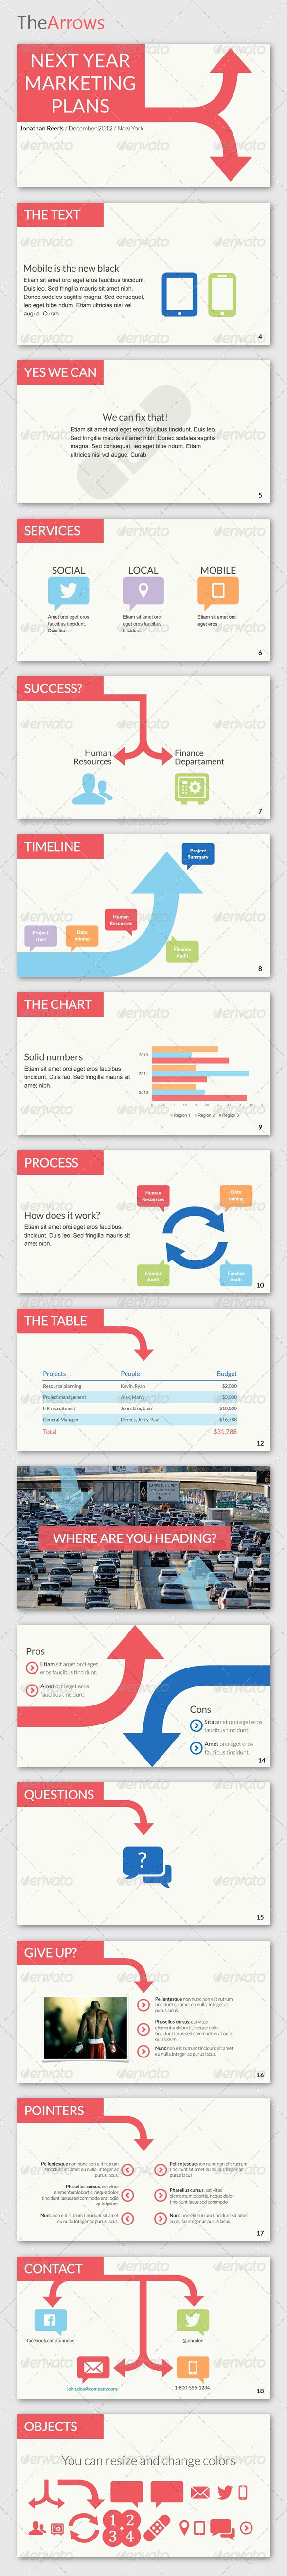 TheArrows Powerpoint Template  #GraphicRiver           	 Another clean, elegant and modern business presentation template for keynote. Now you can present your business case in a non conventional way and modify this template to your needs.  	 Fonts:  	 	 Arial – system font 		 Lato – download for free from:  Created: 4January13 PixelDimensions: 1920x1080 PresentationFilesIncluded: PowerpointPPTX Tags: business #corporate #creative #keynote #marketing #modern #presentation #professional…